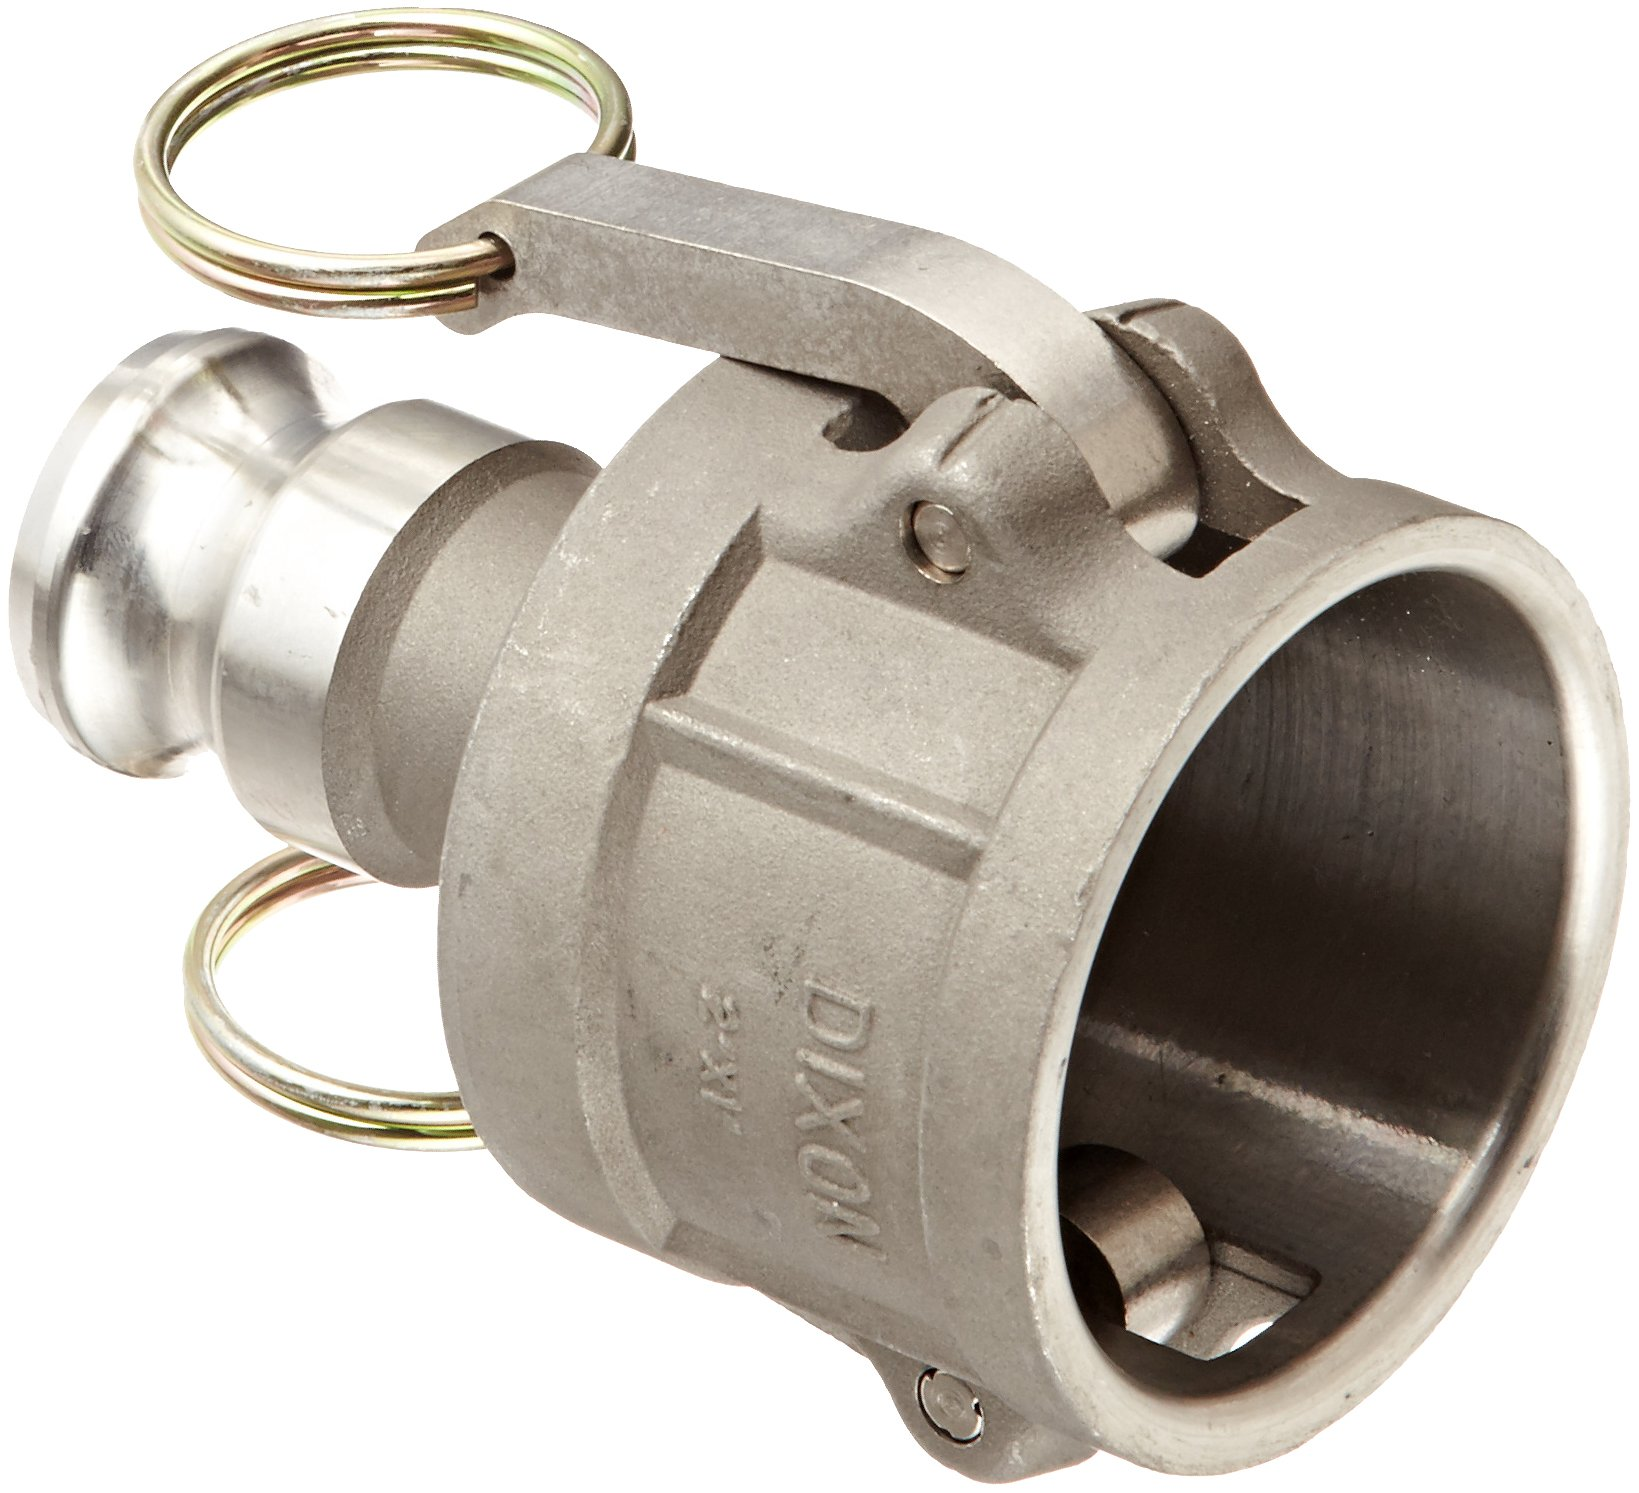 Dixon 2010-DA-SS Stainless Steel 316 Cam and Groove Reducing Hose Fitting, 2'' Socket x 1'' Plug